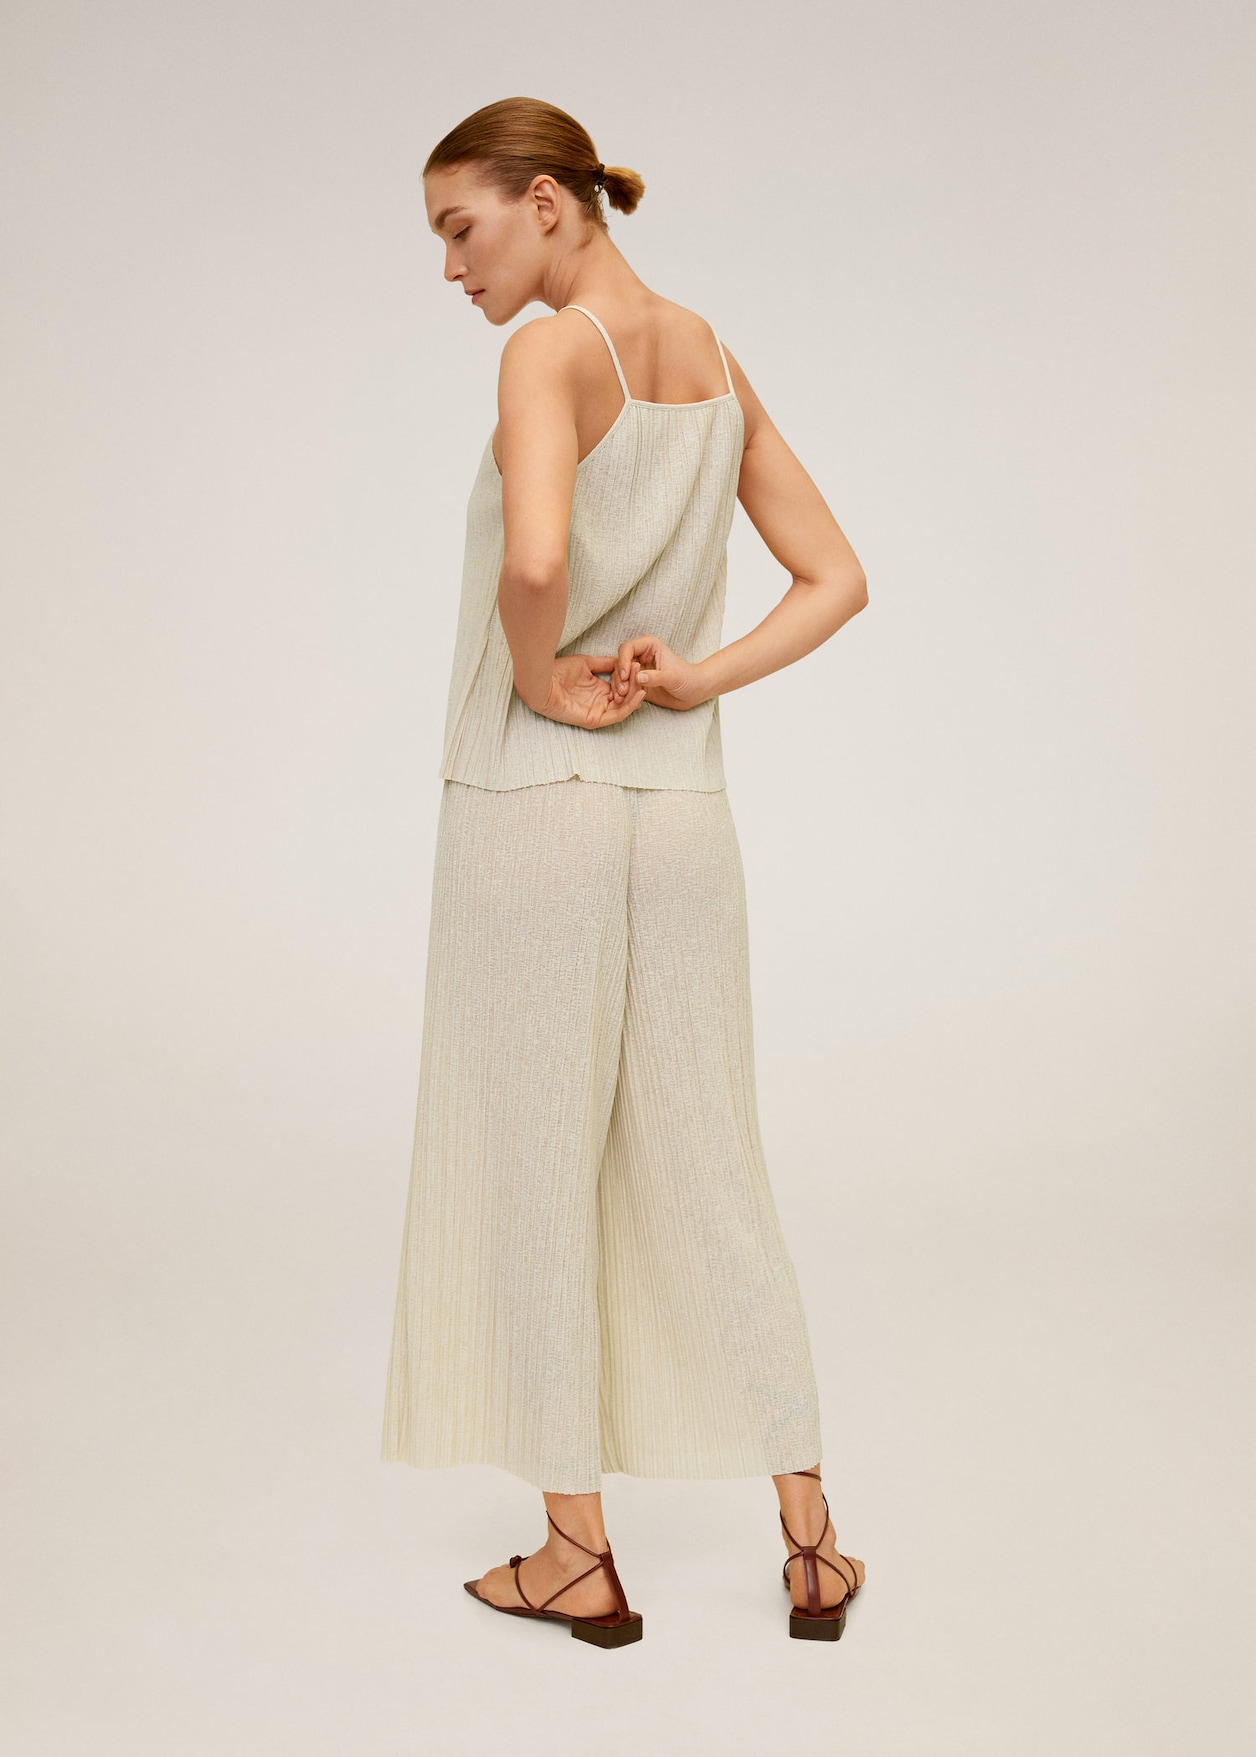 Pleated culotte trousers, Mango, £25.99